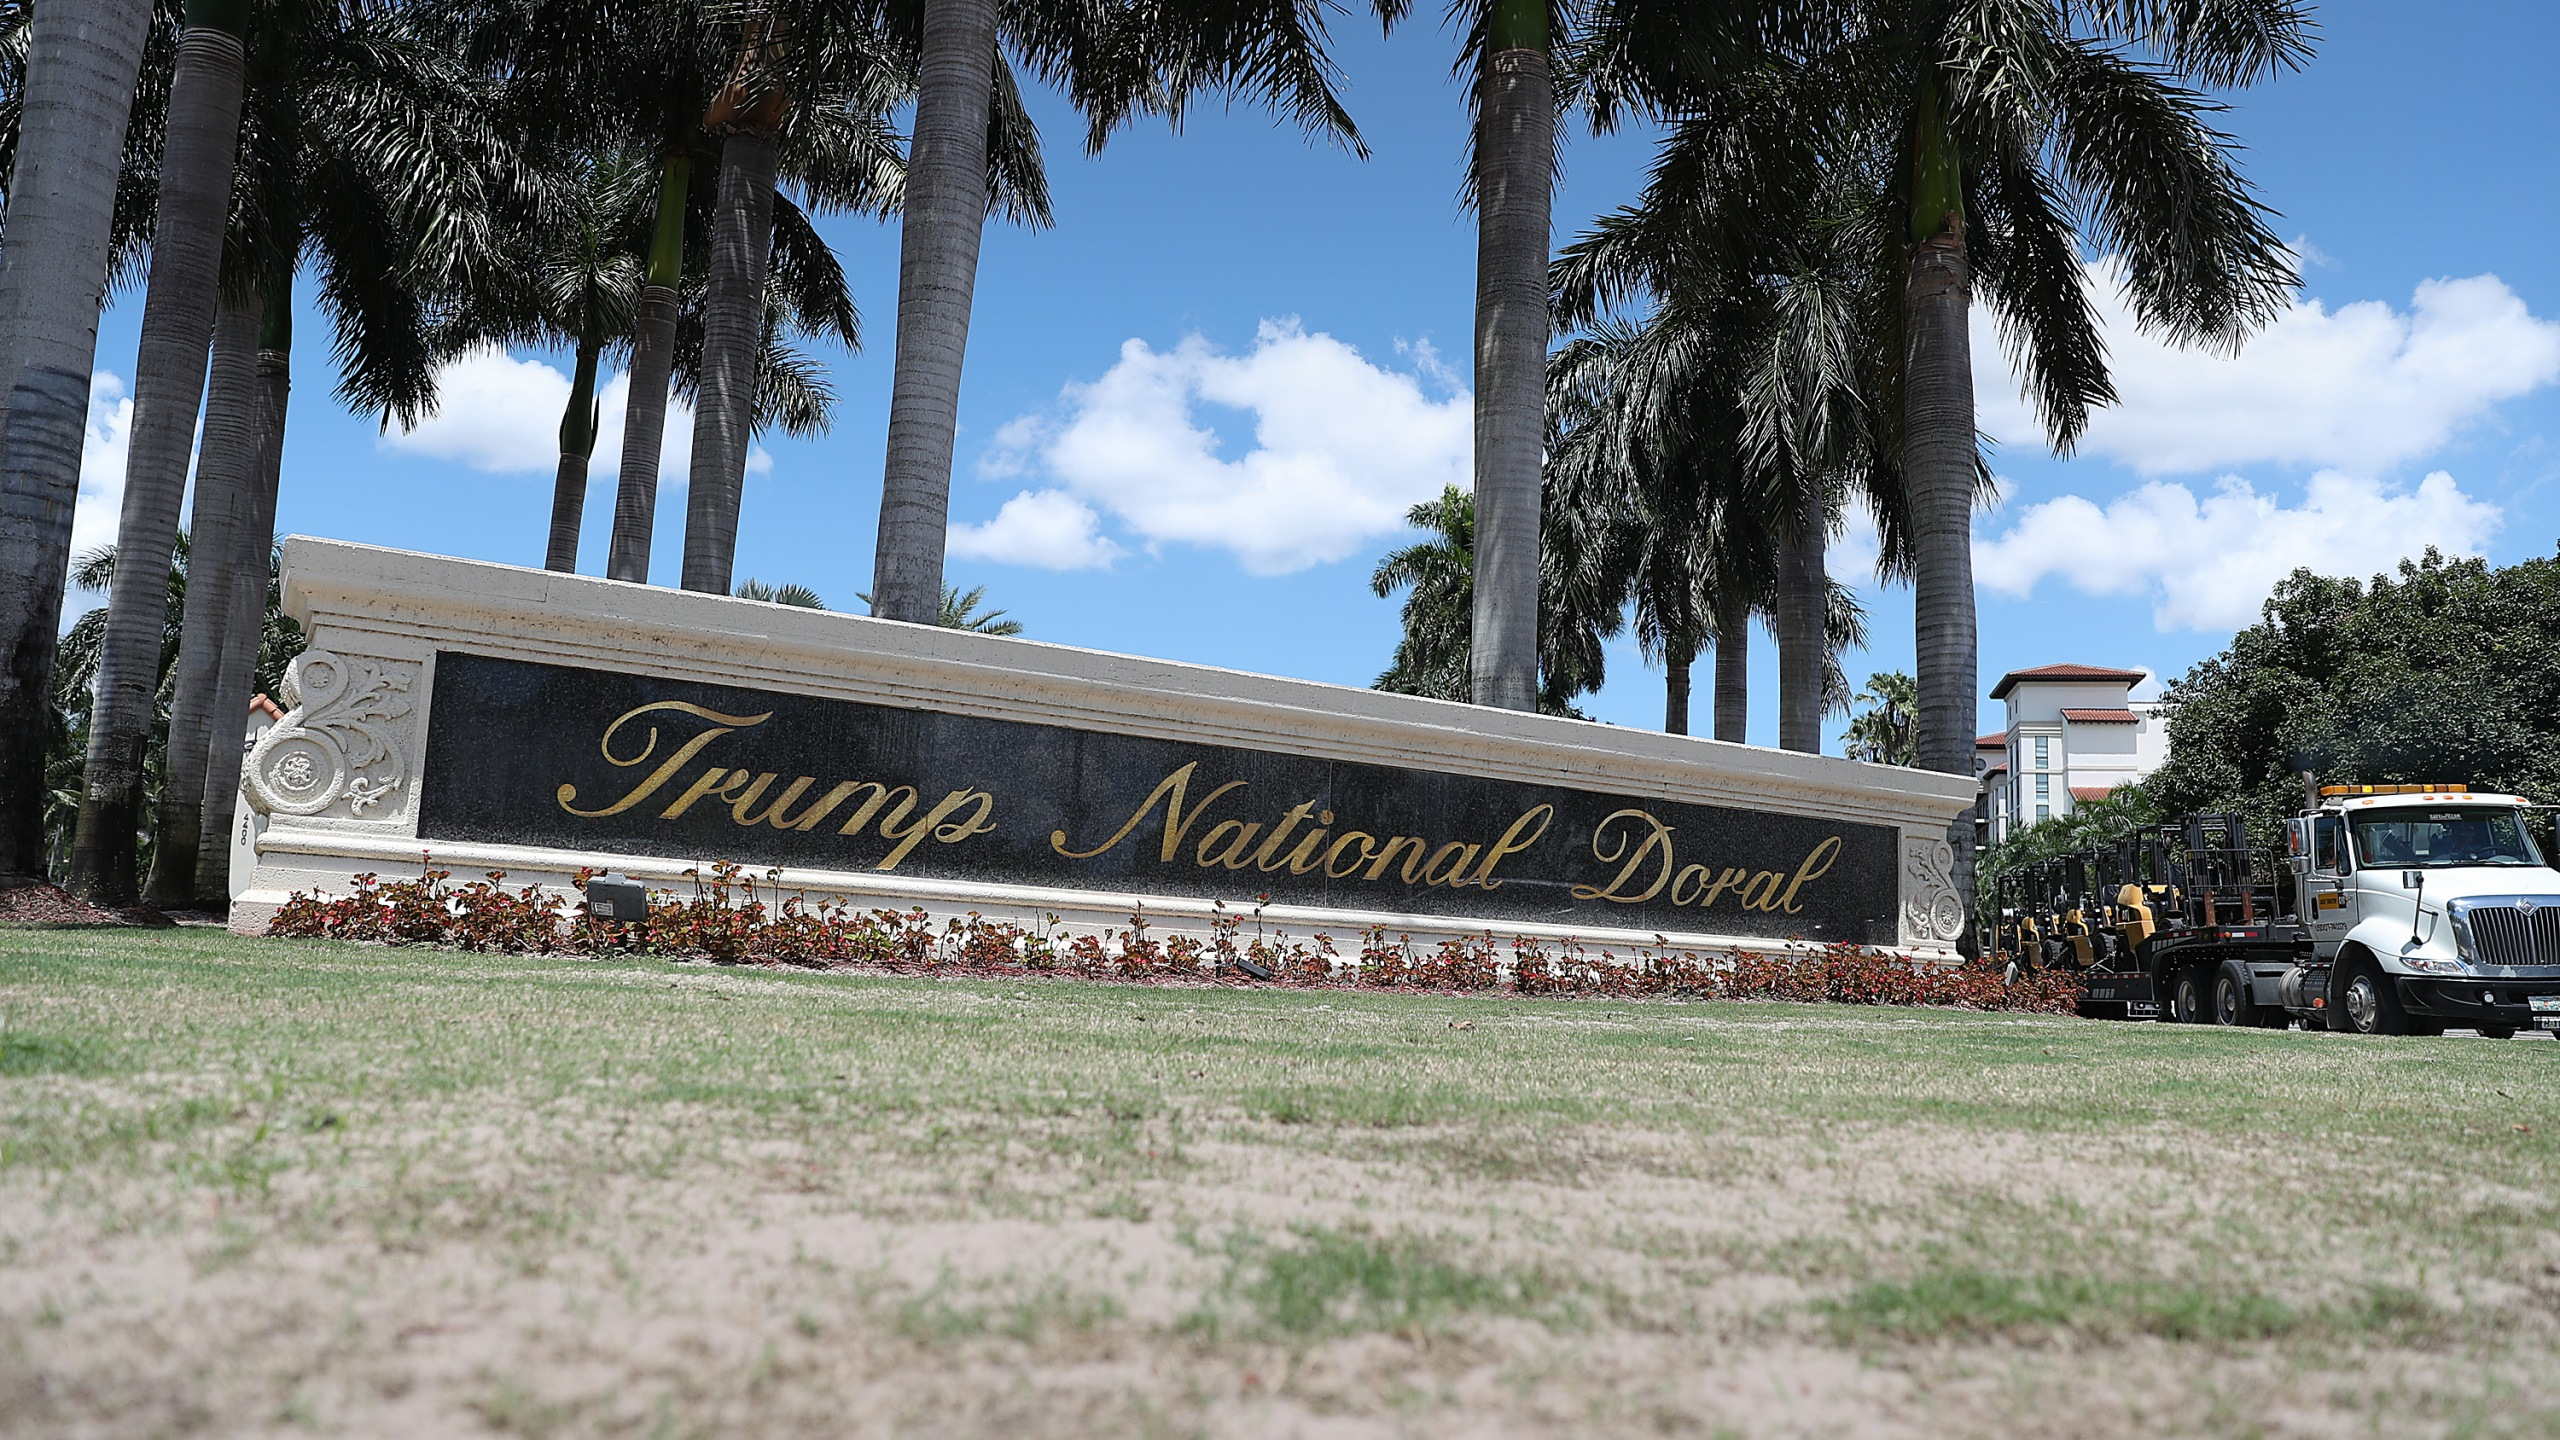 A Trump National Doral sign is seen at the golf resort owned by Donald Trump's company on Aug. 27, 2019 in Doral, Florida. (Credit: Joe Raedle/Getty Images)